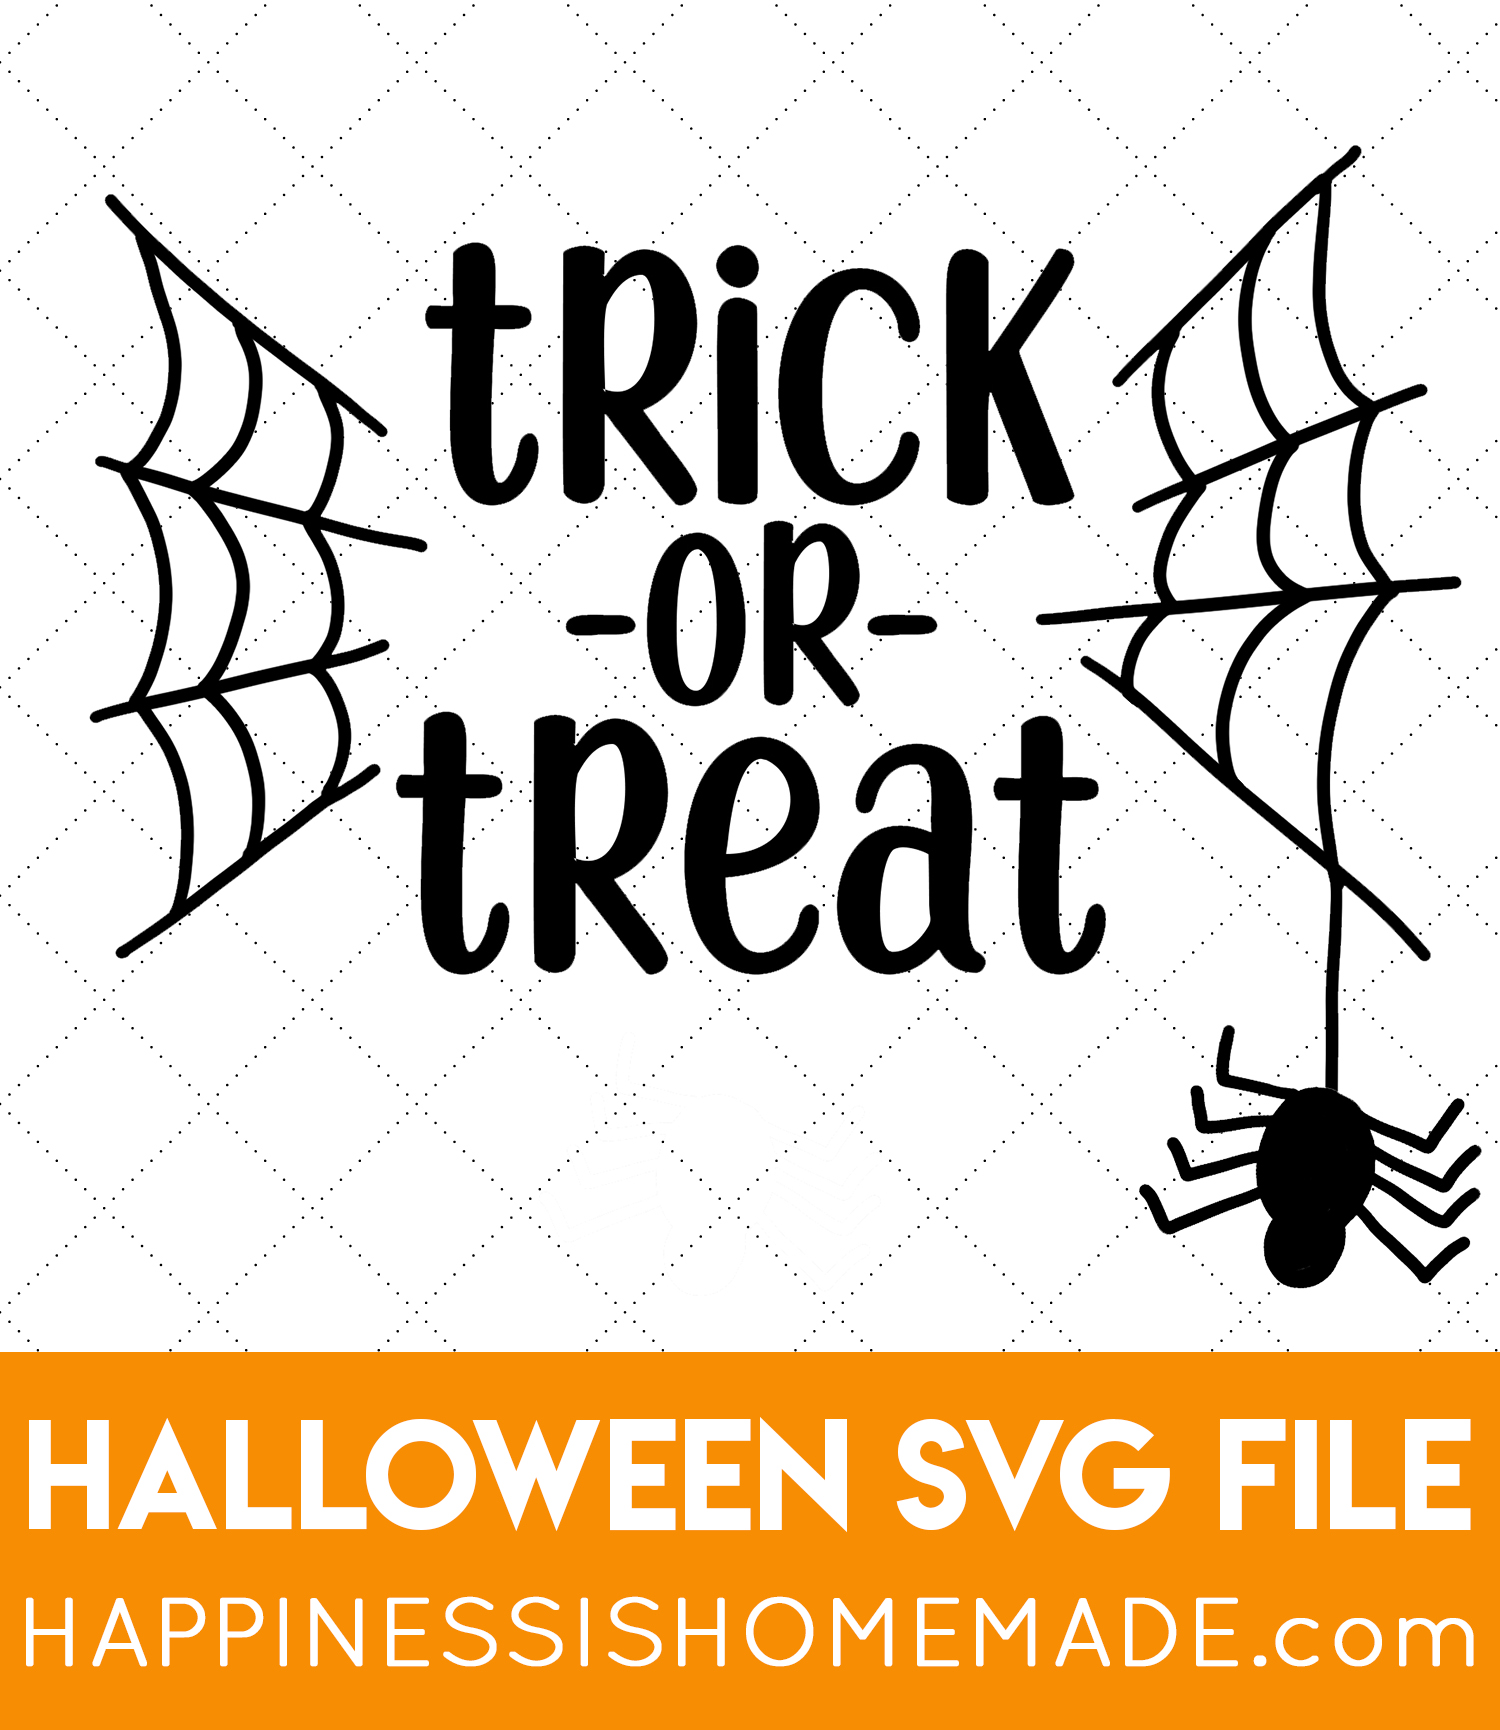 Trick Or Treat Halloween Svg File Happiness Is Homemade